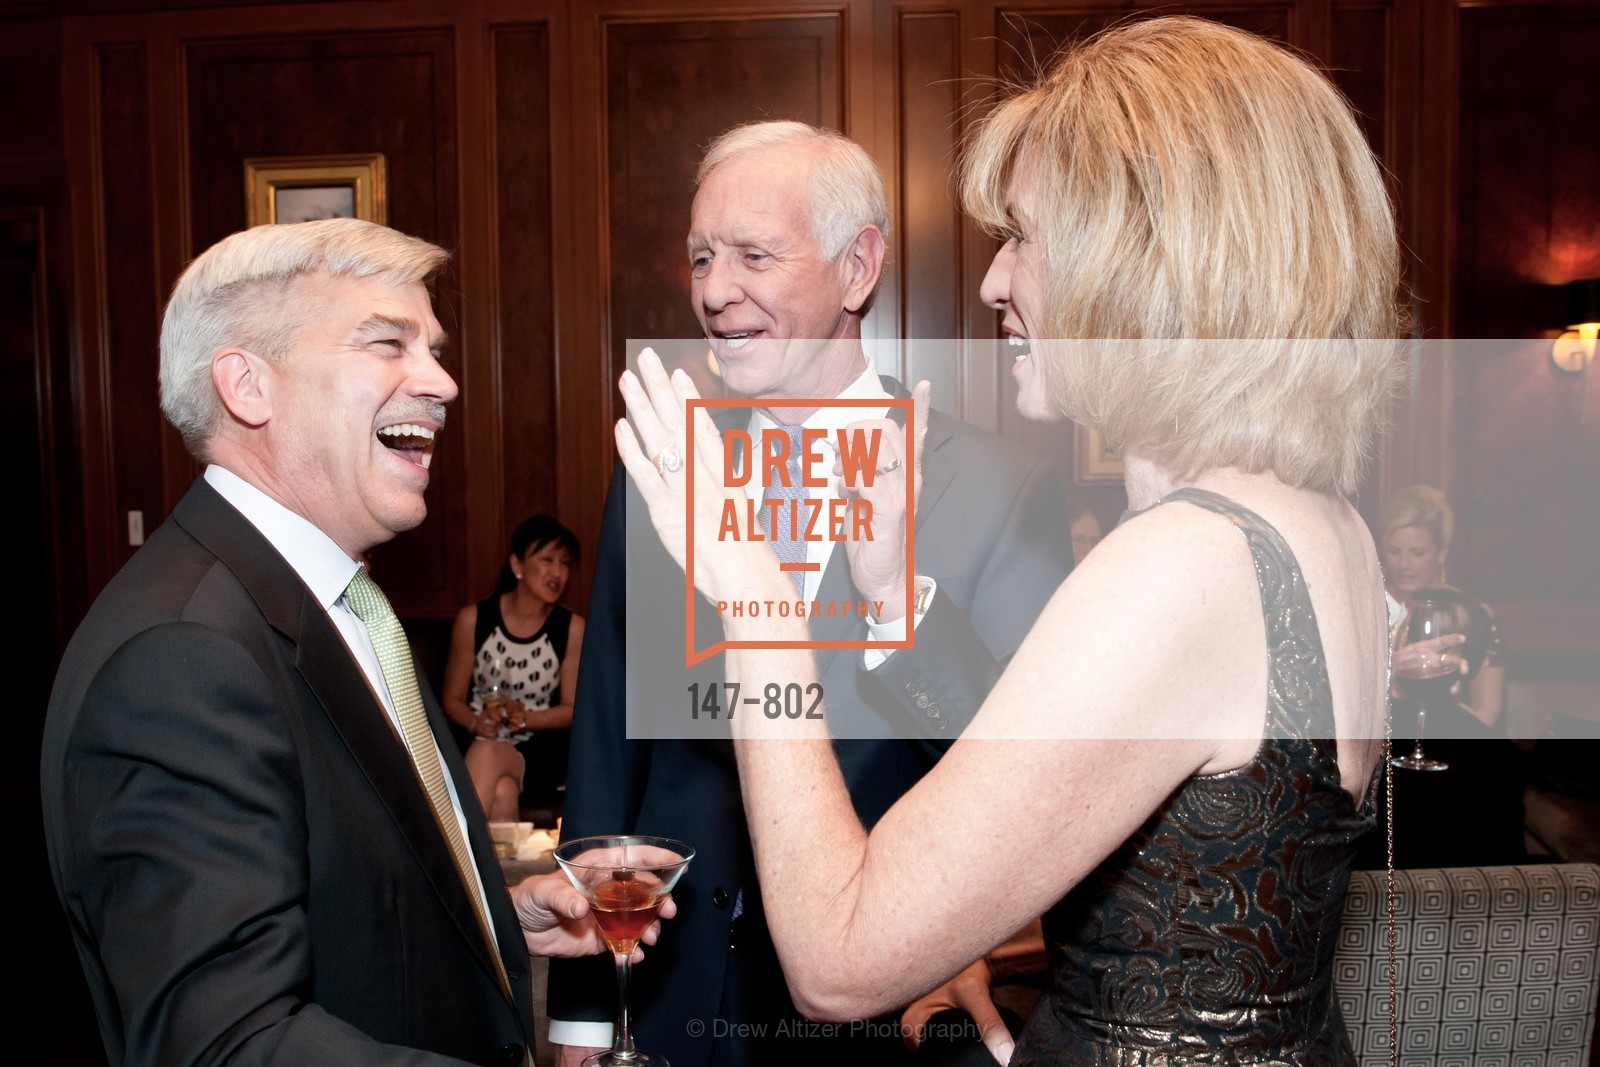 Sully Sullenberger, Lorrie Sullenberger, MR PORTER Celebrate The San Francisco Issue of The Journal, US, April 23rd, 2015,Drew Altizer, Drew Altizer Photography, full-service agency, private events, San Francisco photographer, photographer california